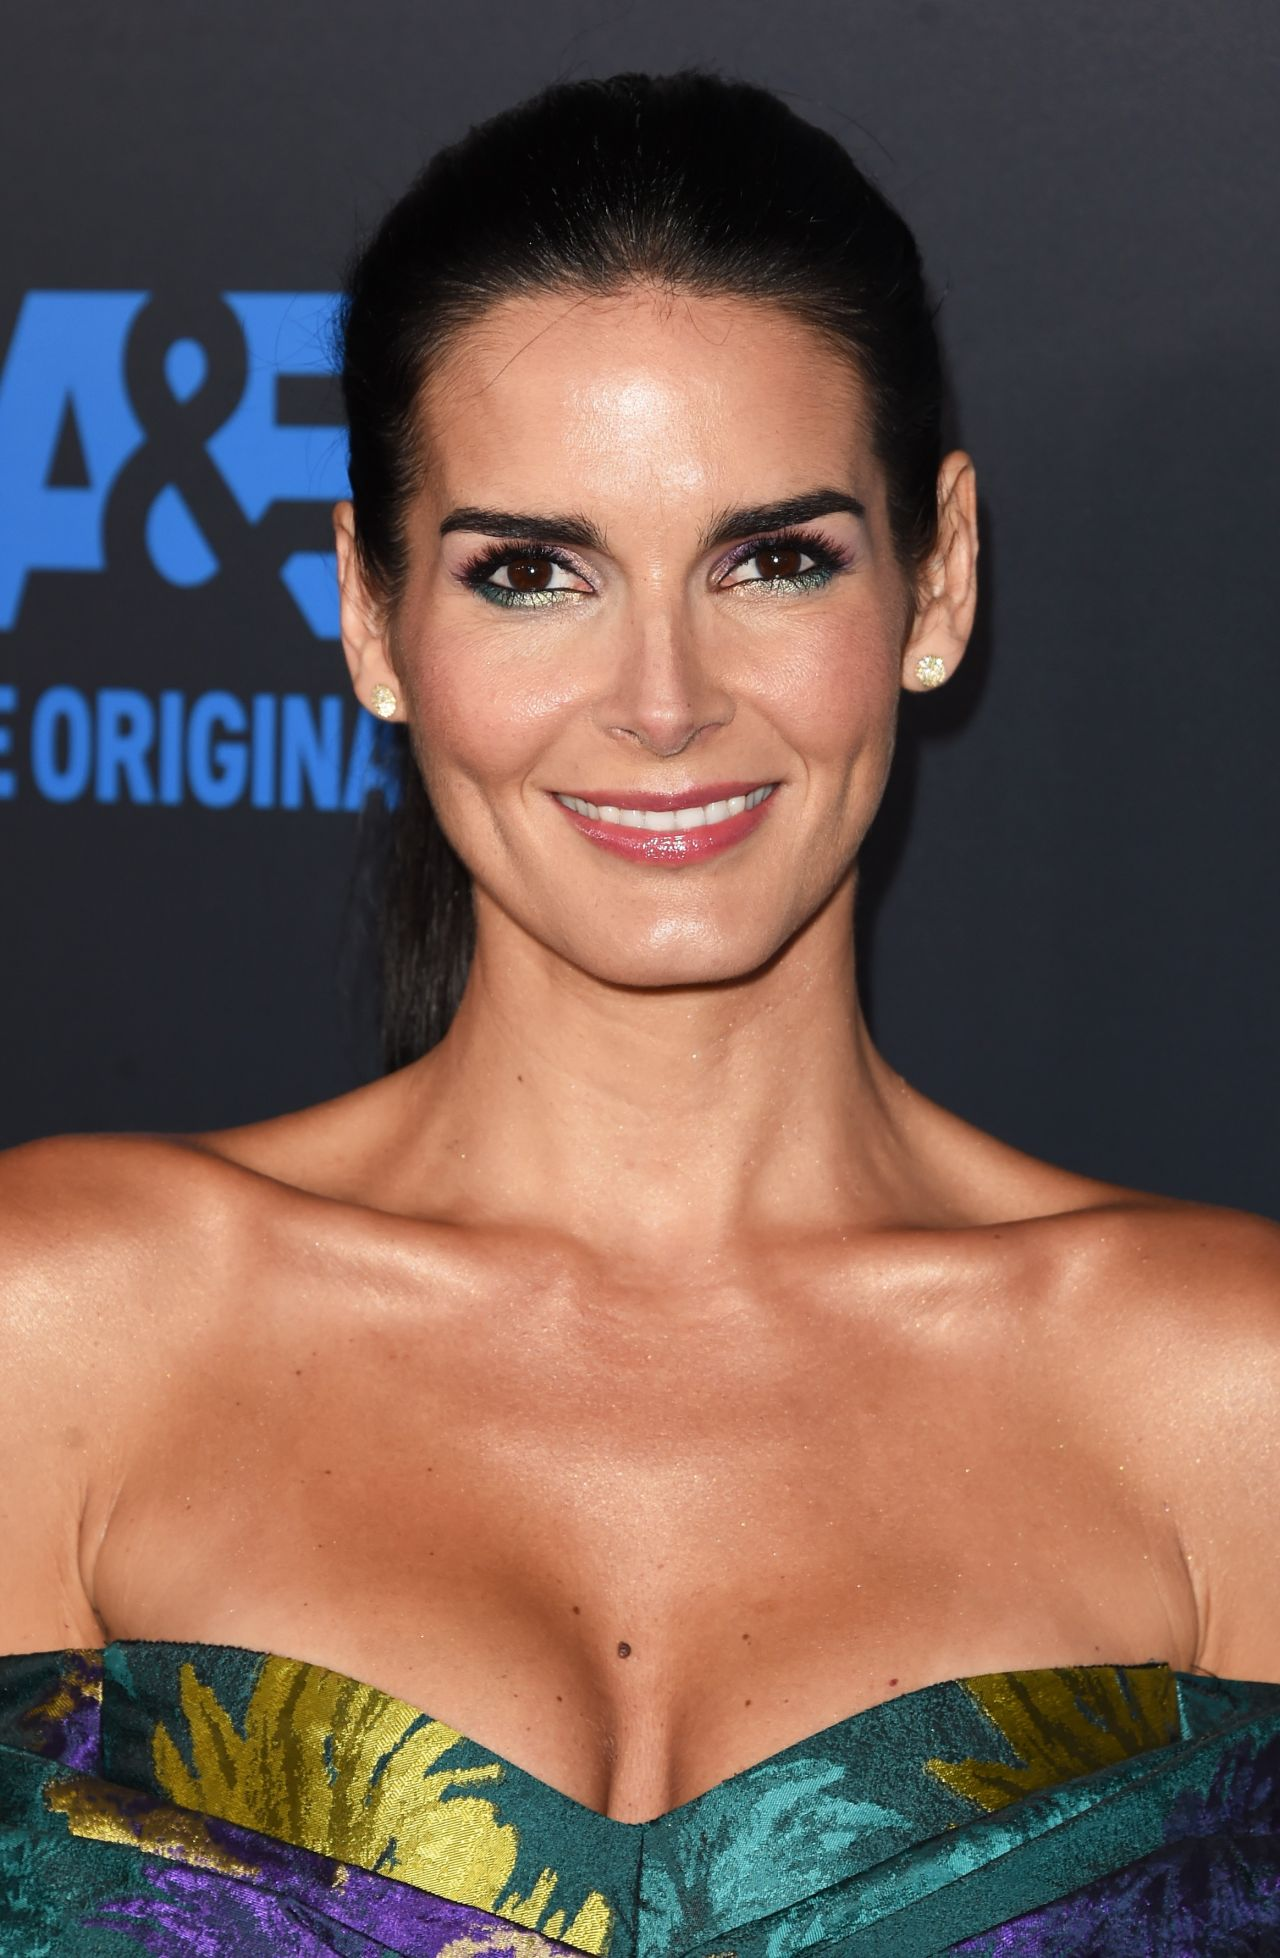 angie-harmon-2015-critics-choice-television-awards-in-beverly-hills_4